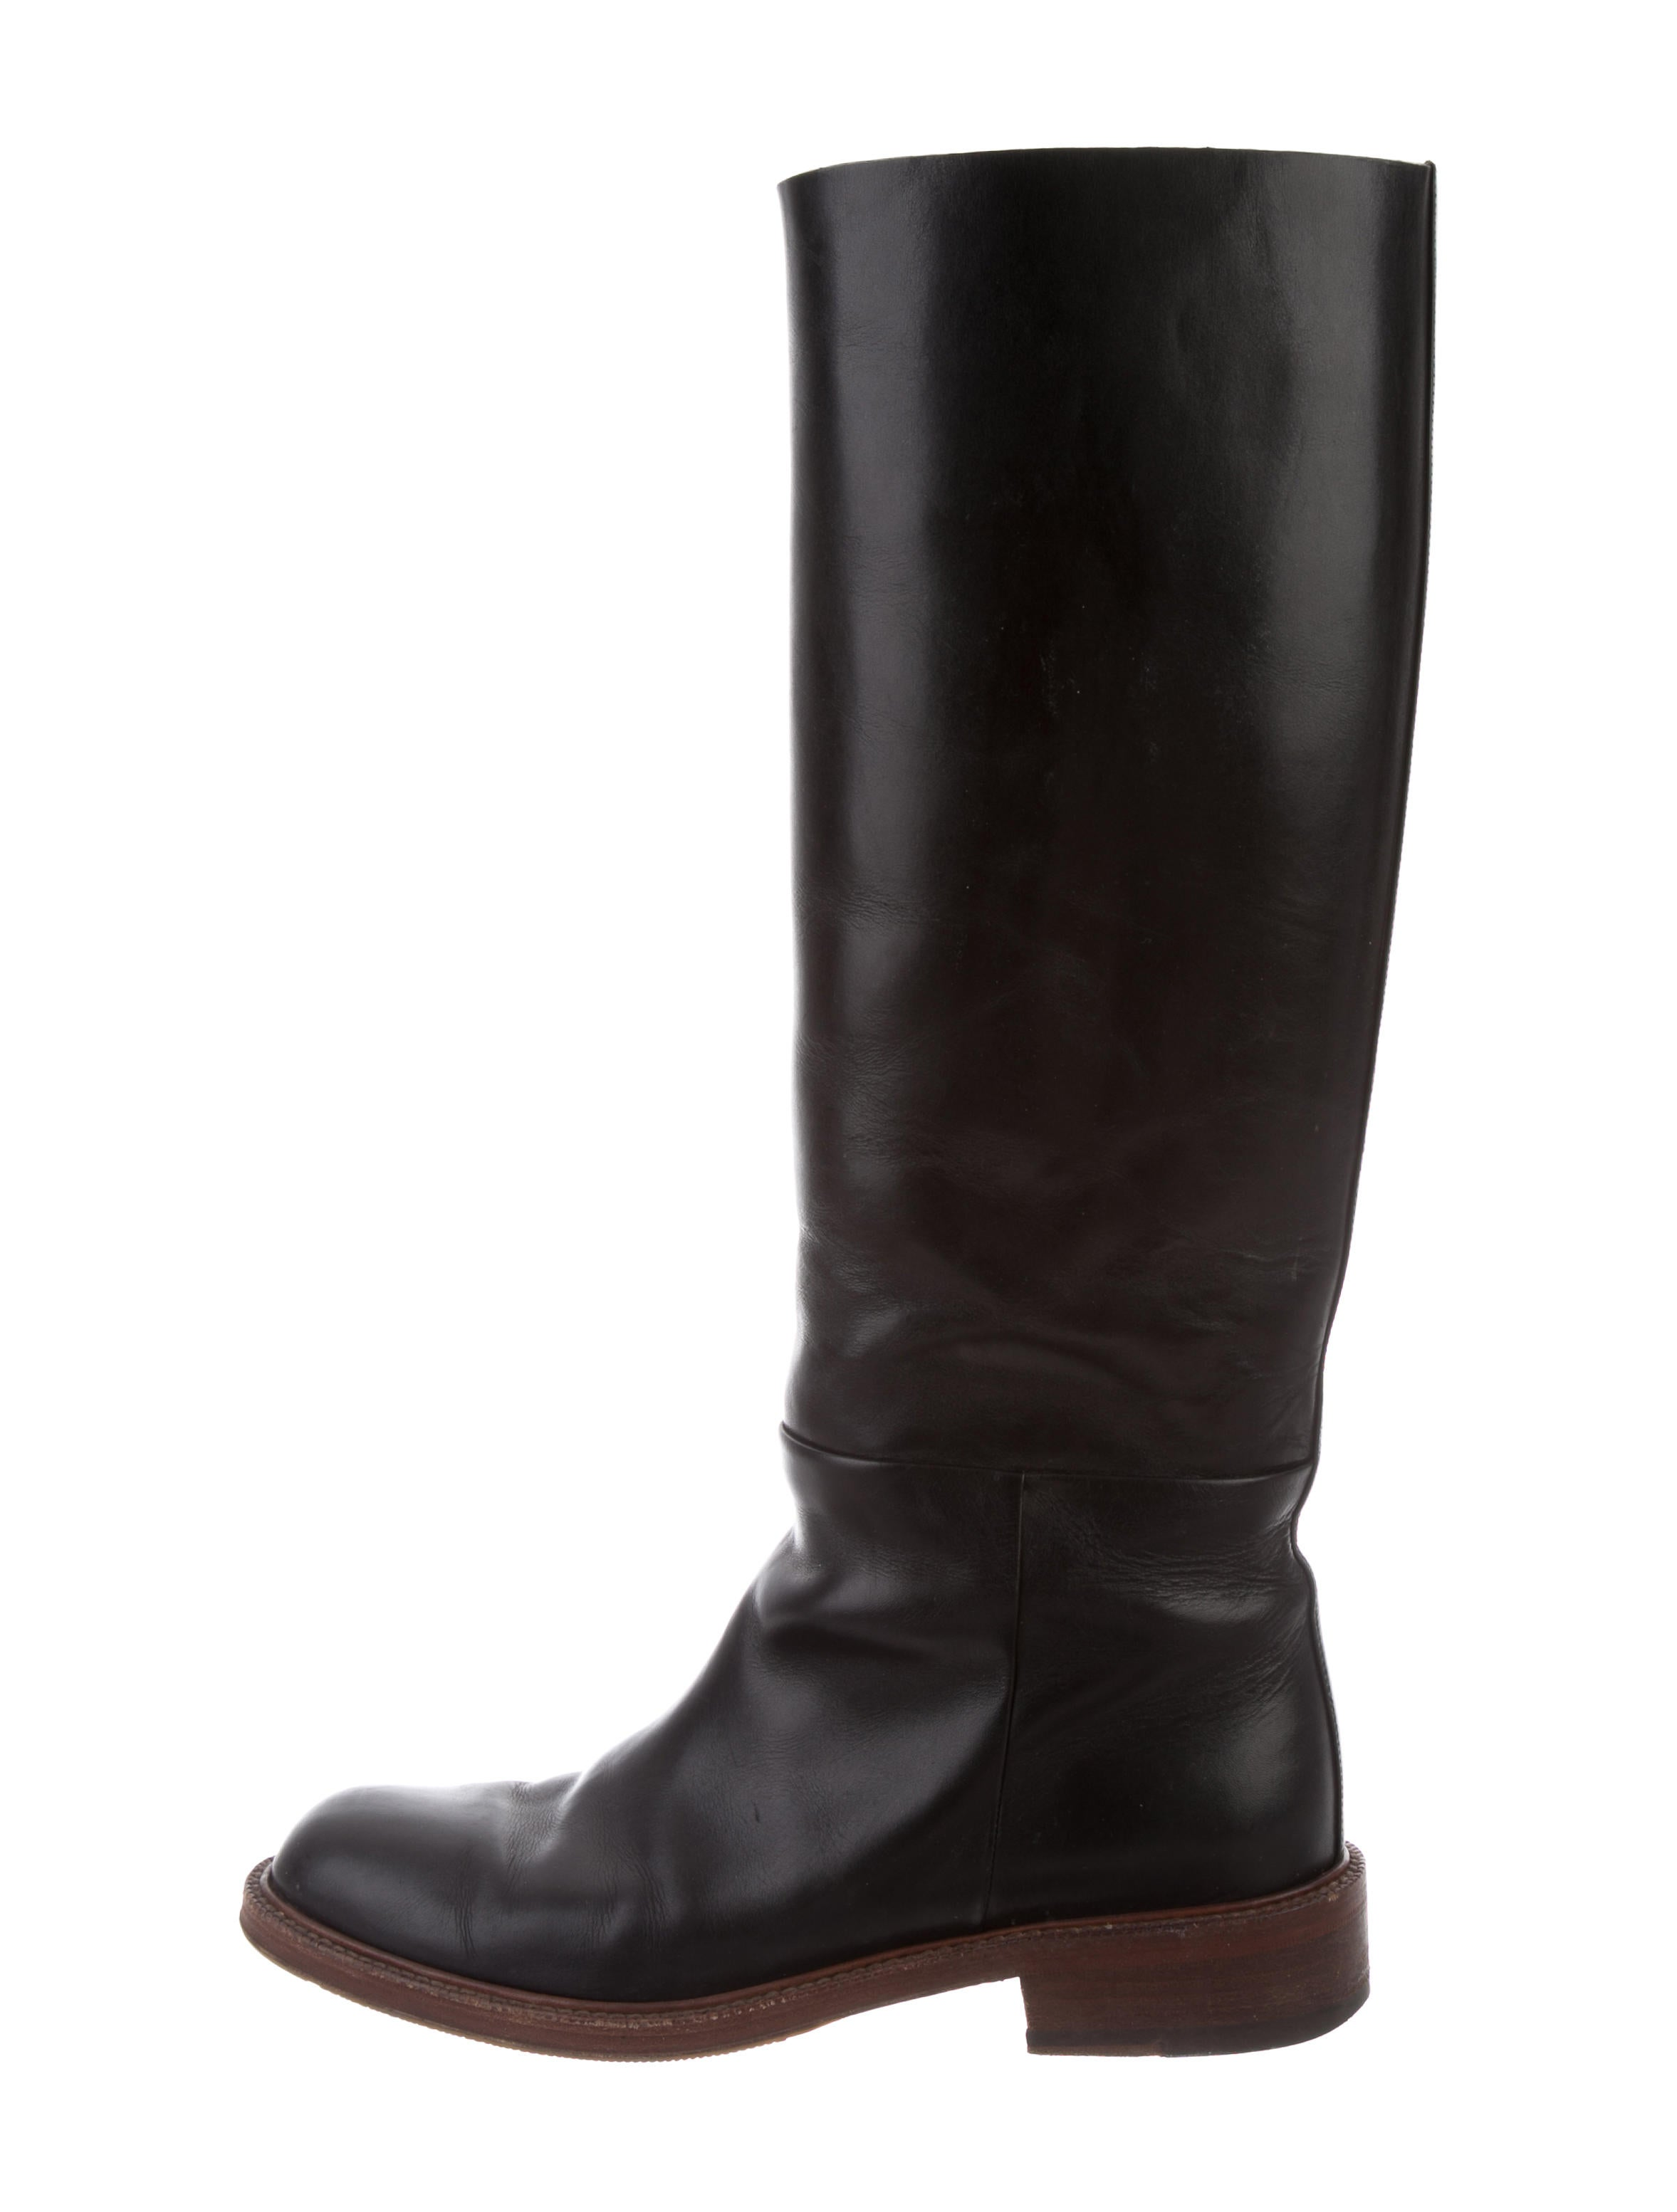 Céline Leather Knee-High Booties